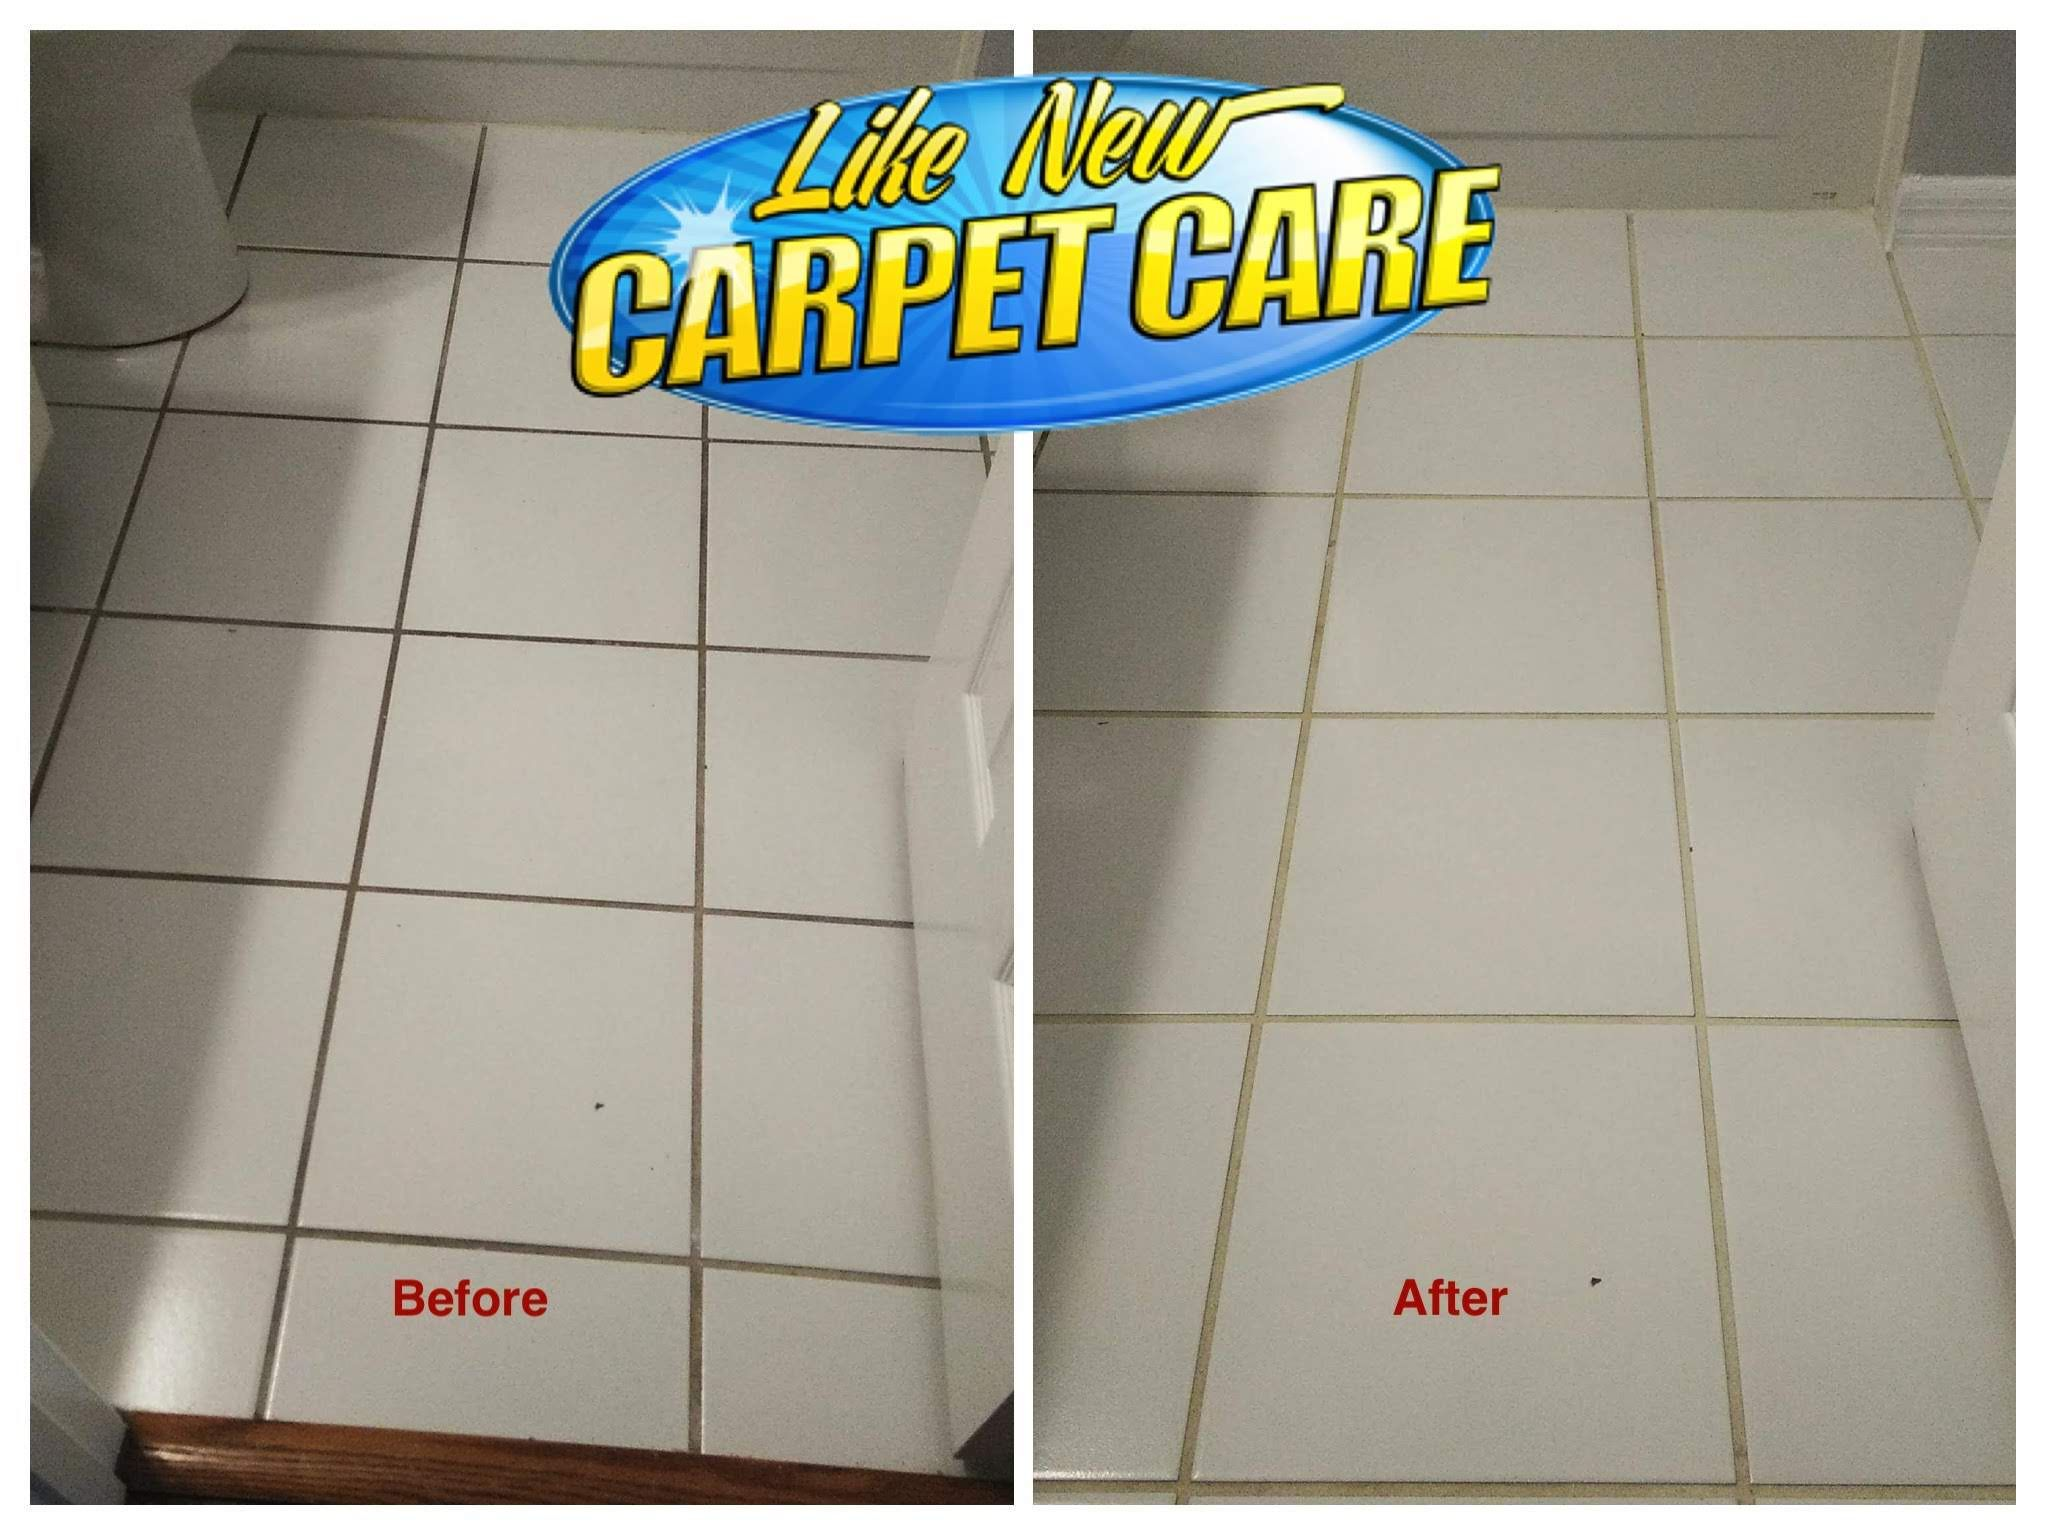 Our Hot Water Extraction Cleaning Process Is The Perfect Method For Tile And Grout Cleaning This Safe And Effect In 2020 Grout Cleaner How To Clean Carpet Carpet Care